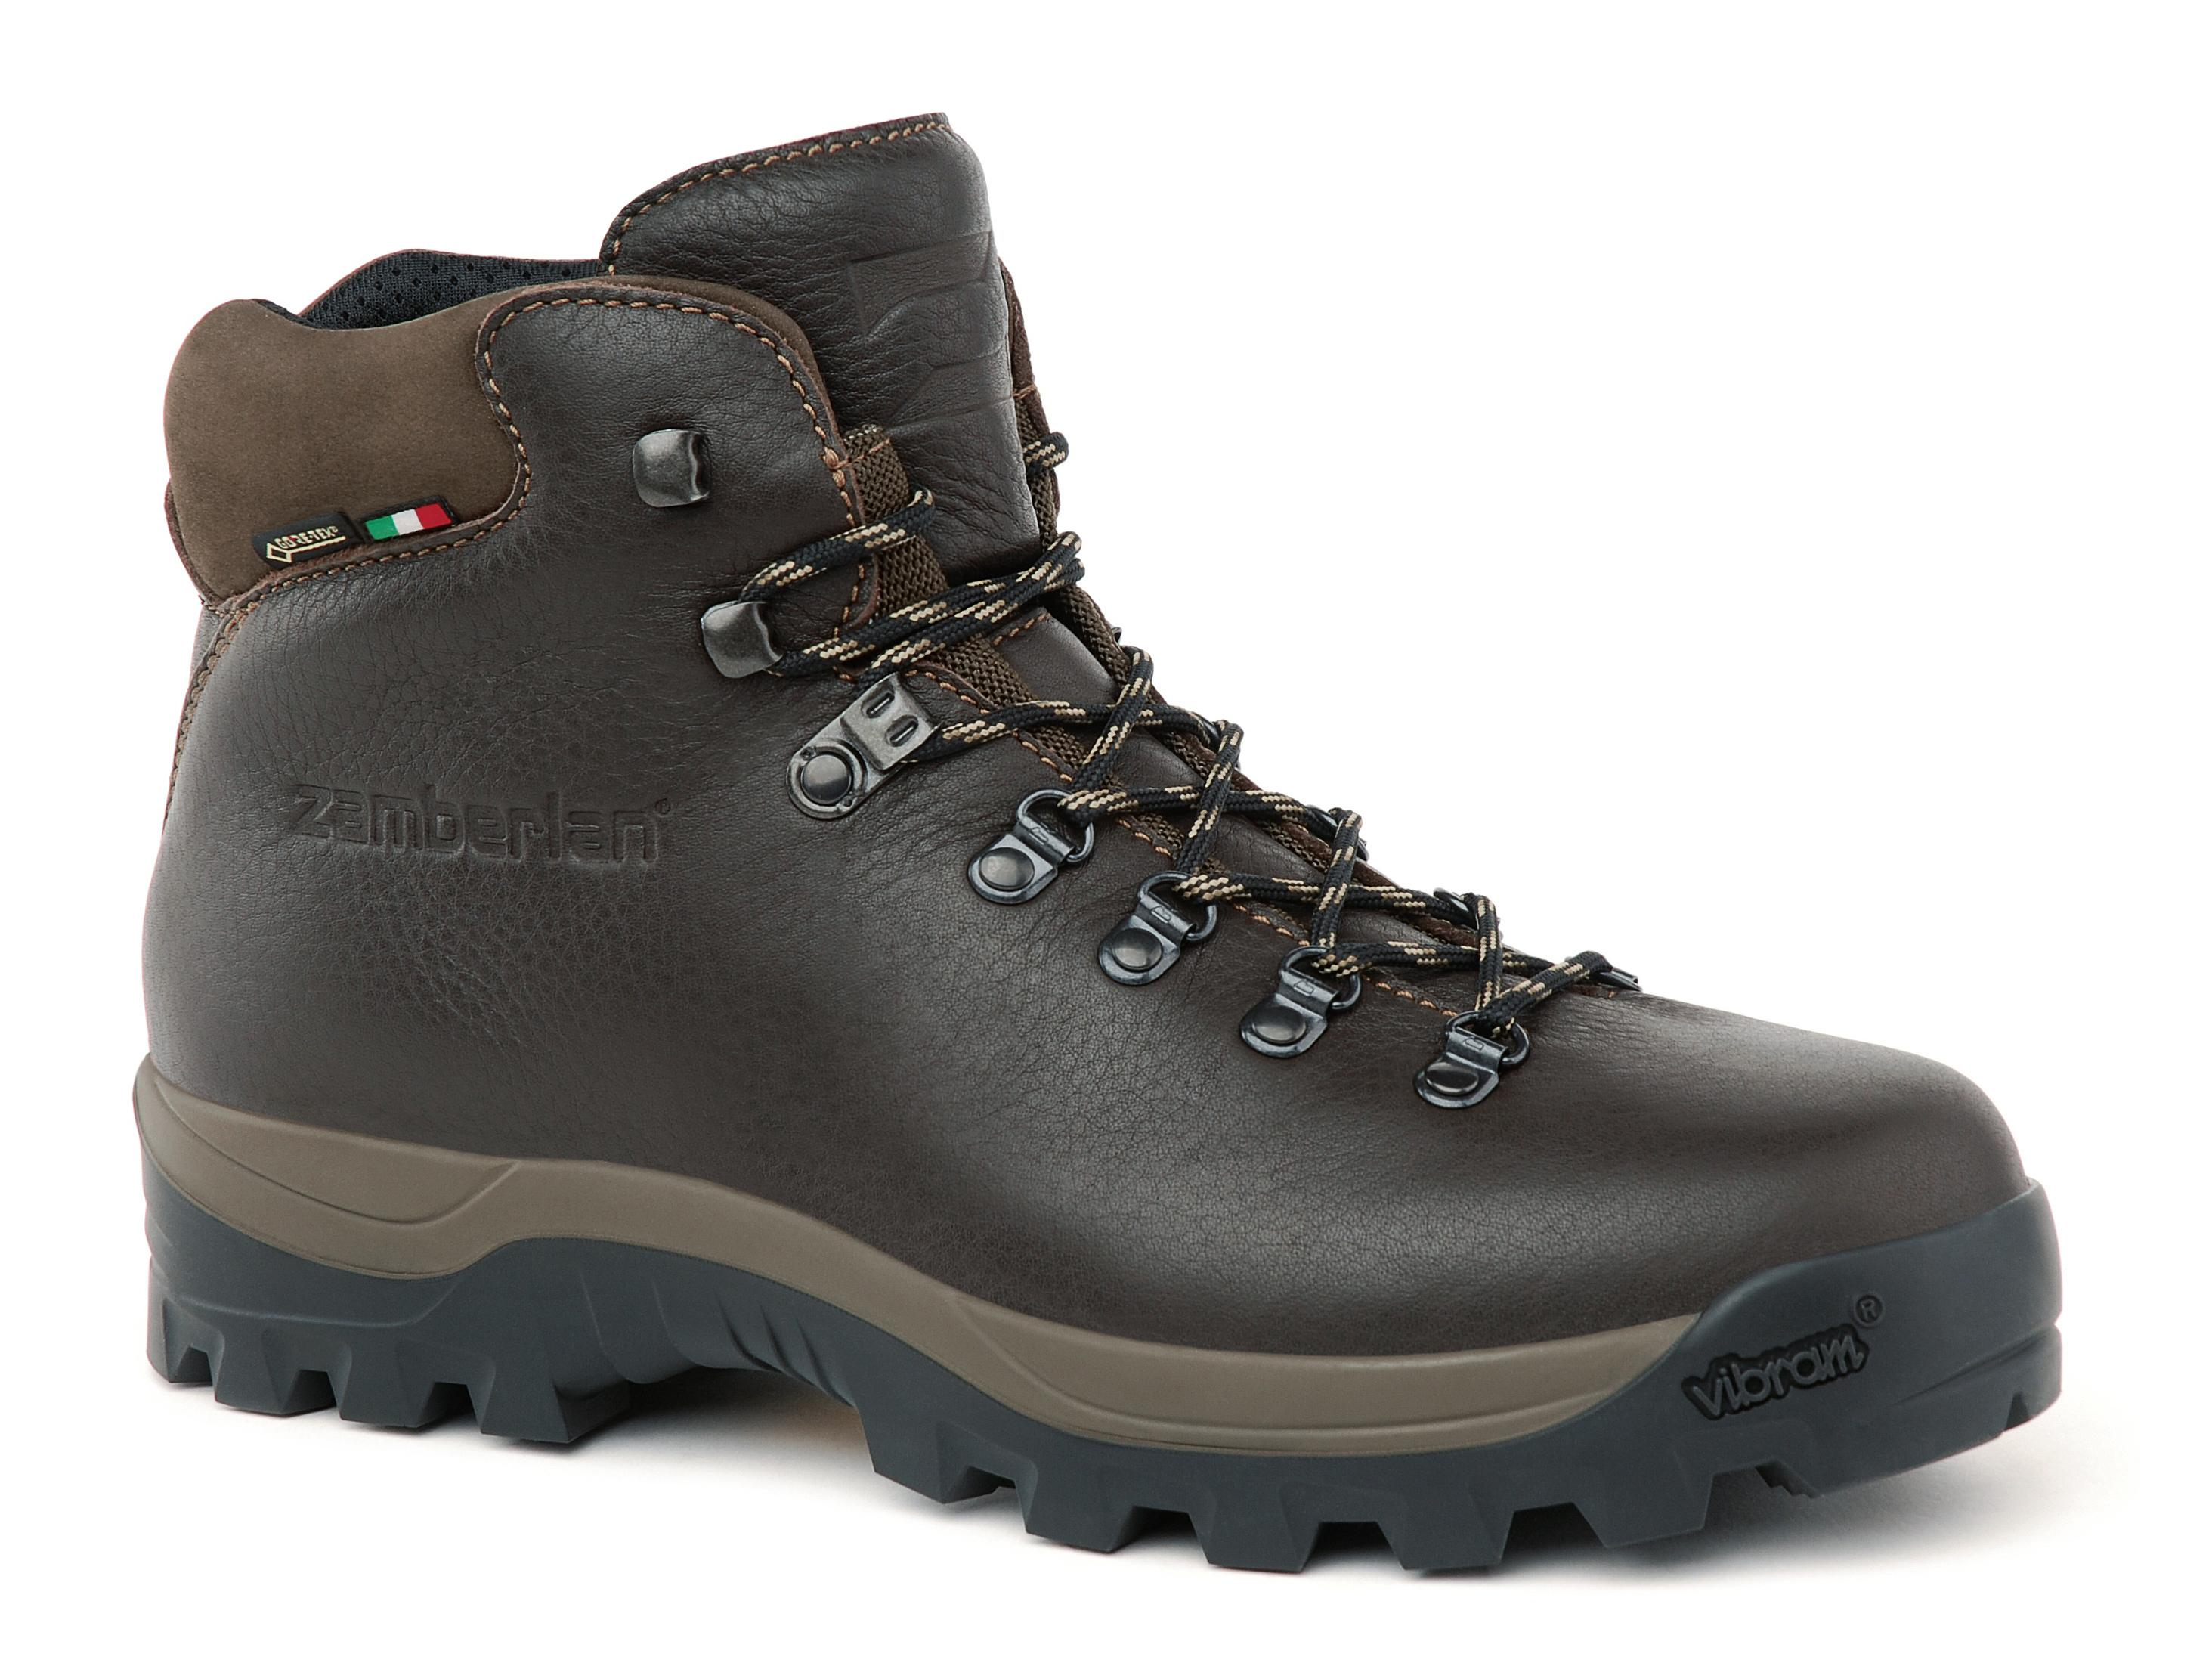 Zamberlan 5030 Sequoia Gore-Tex Boot